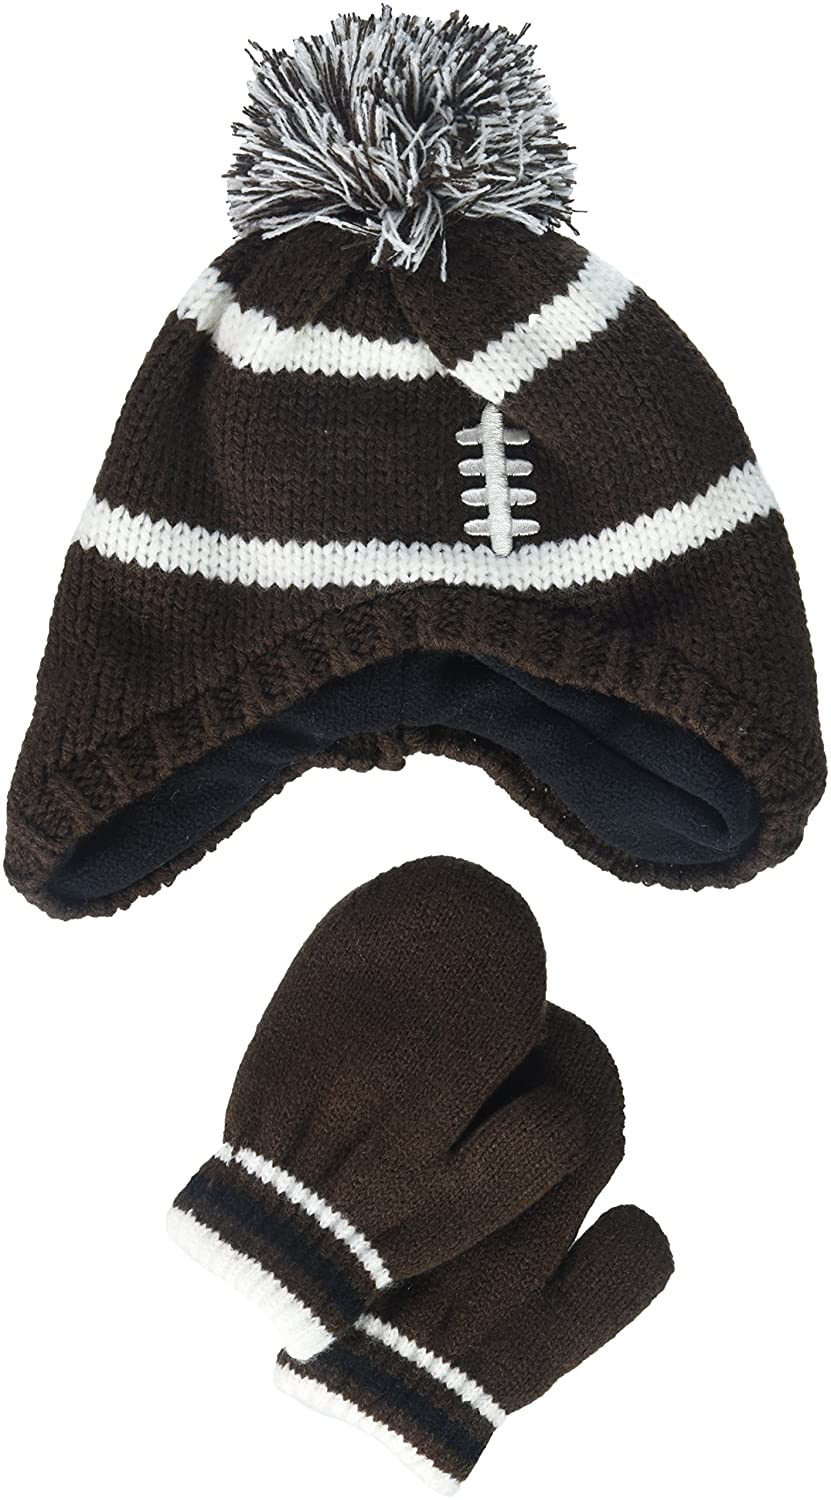 The Children's Place Baby Boys' Winterwear Set 2085696